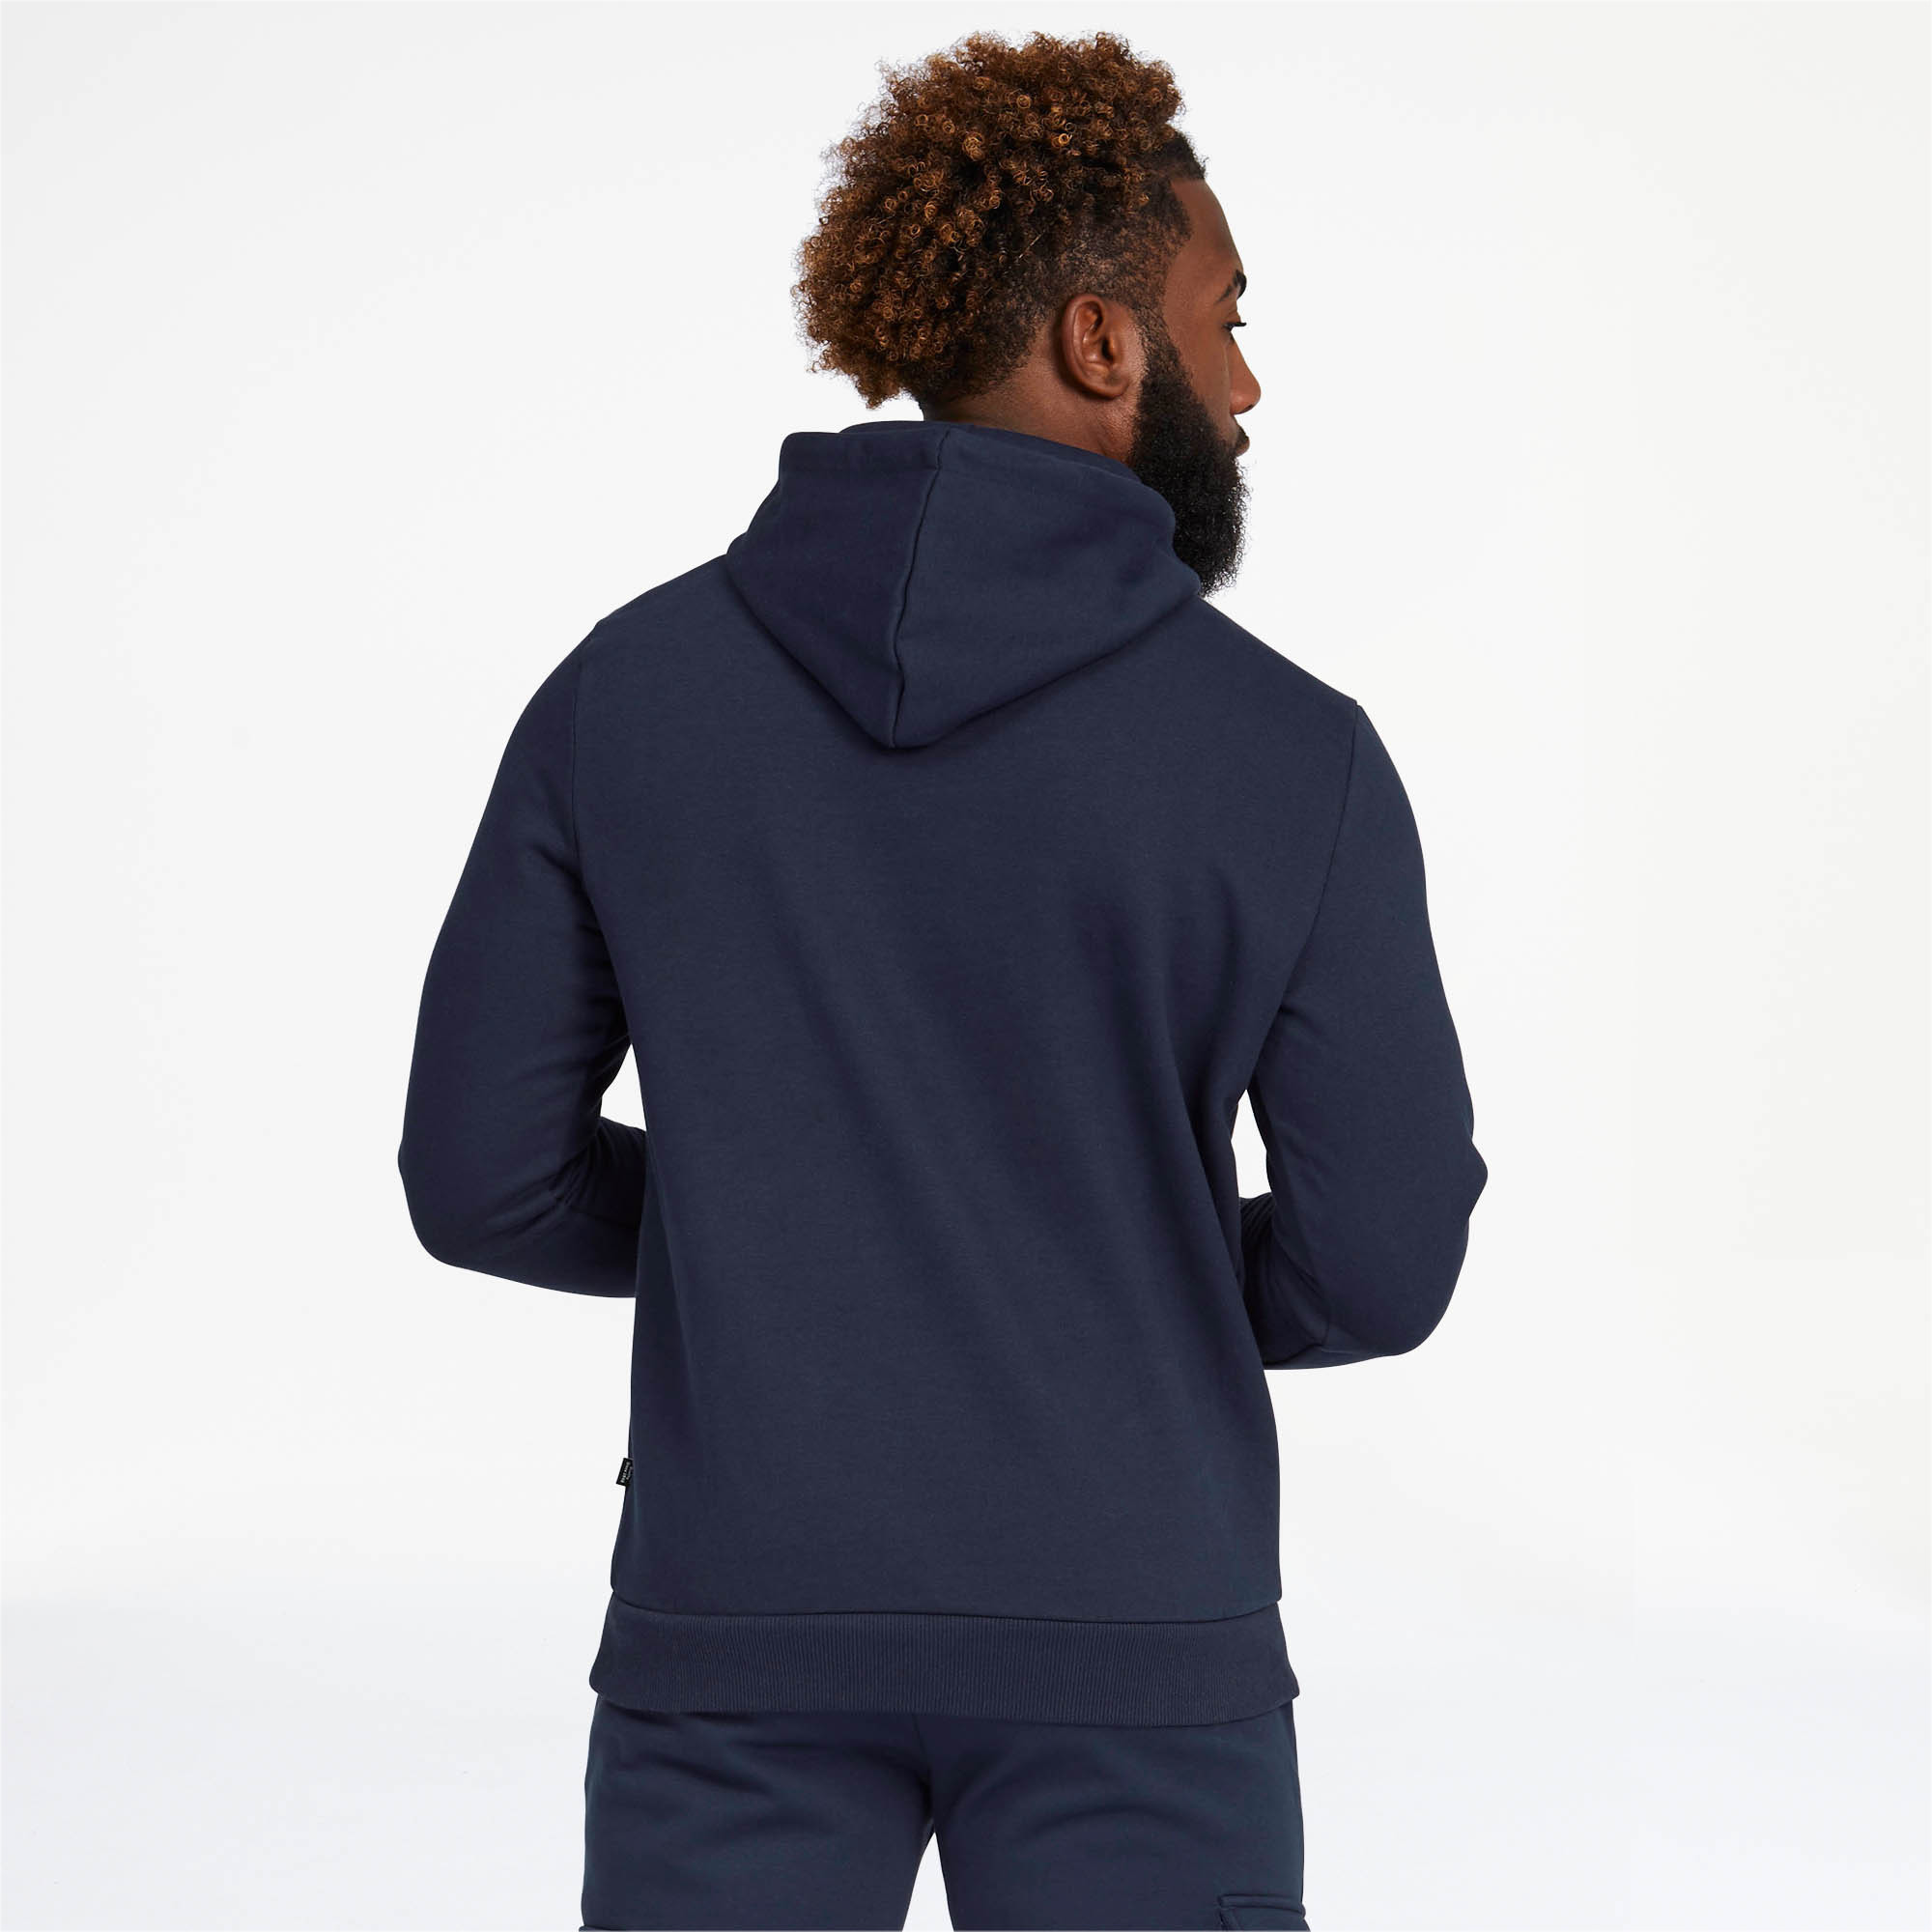 PUMA-Essentials-Men-039-s-Fleece-Hoodie-Men-Sweat-Basics thumbnail 13